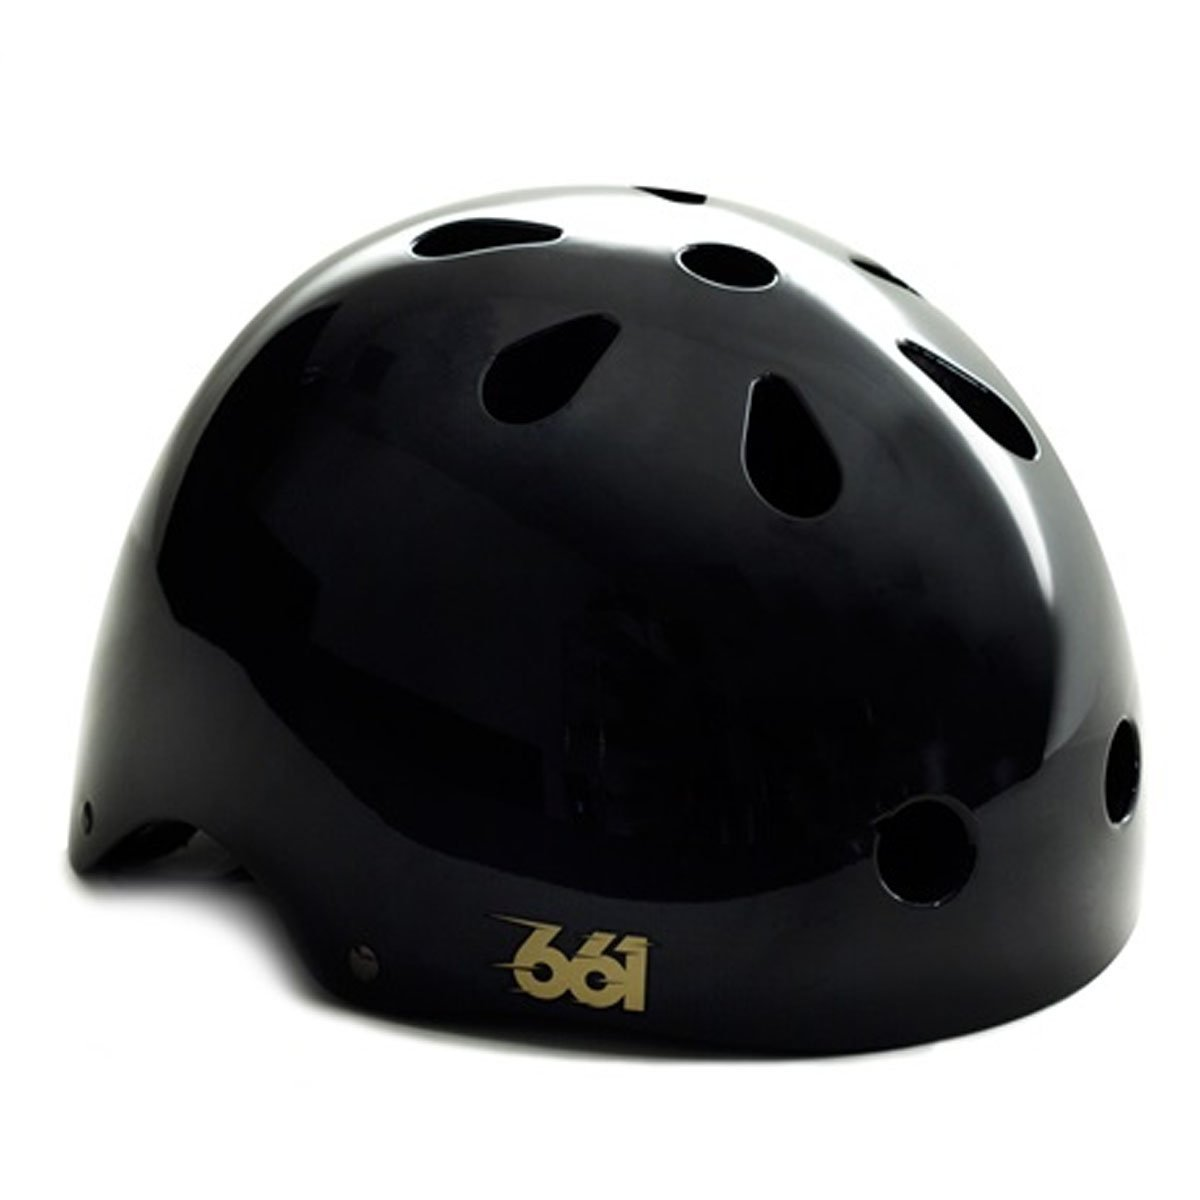 Sizes of SixSixOne Bicycle Helmets